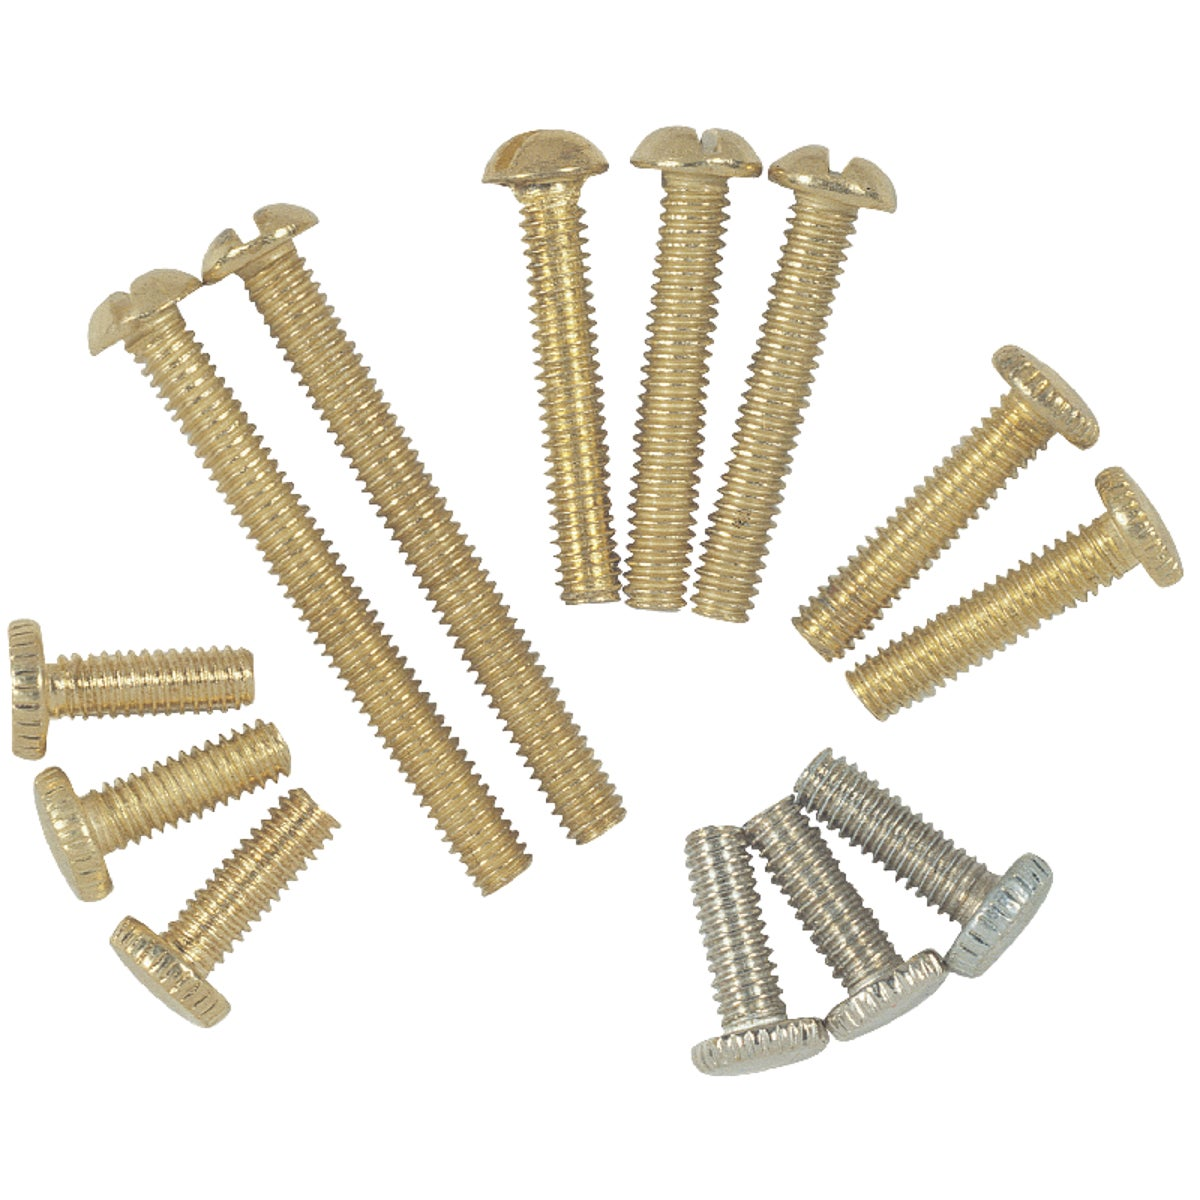 "8/32"" LAMP SCREWS - 70156 by Westinghouse Lightng"